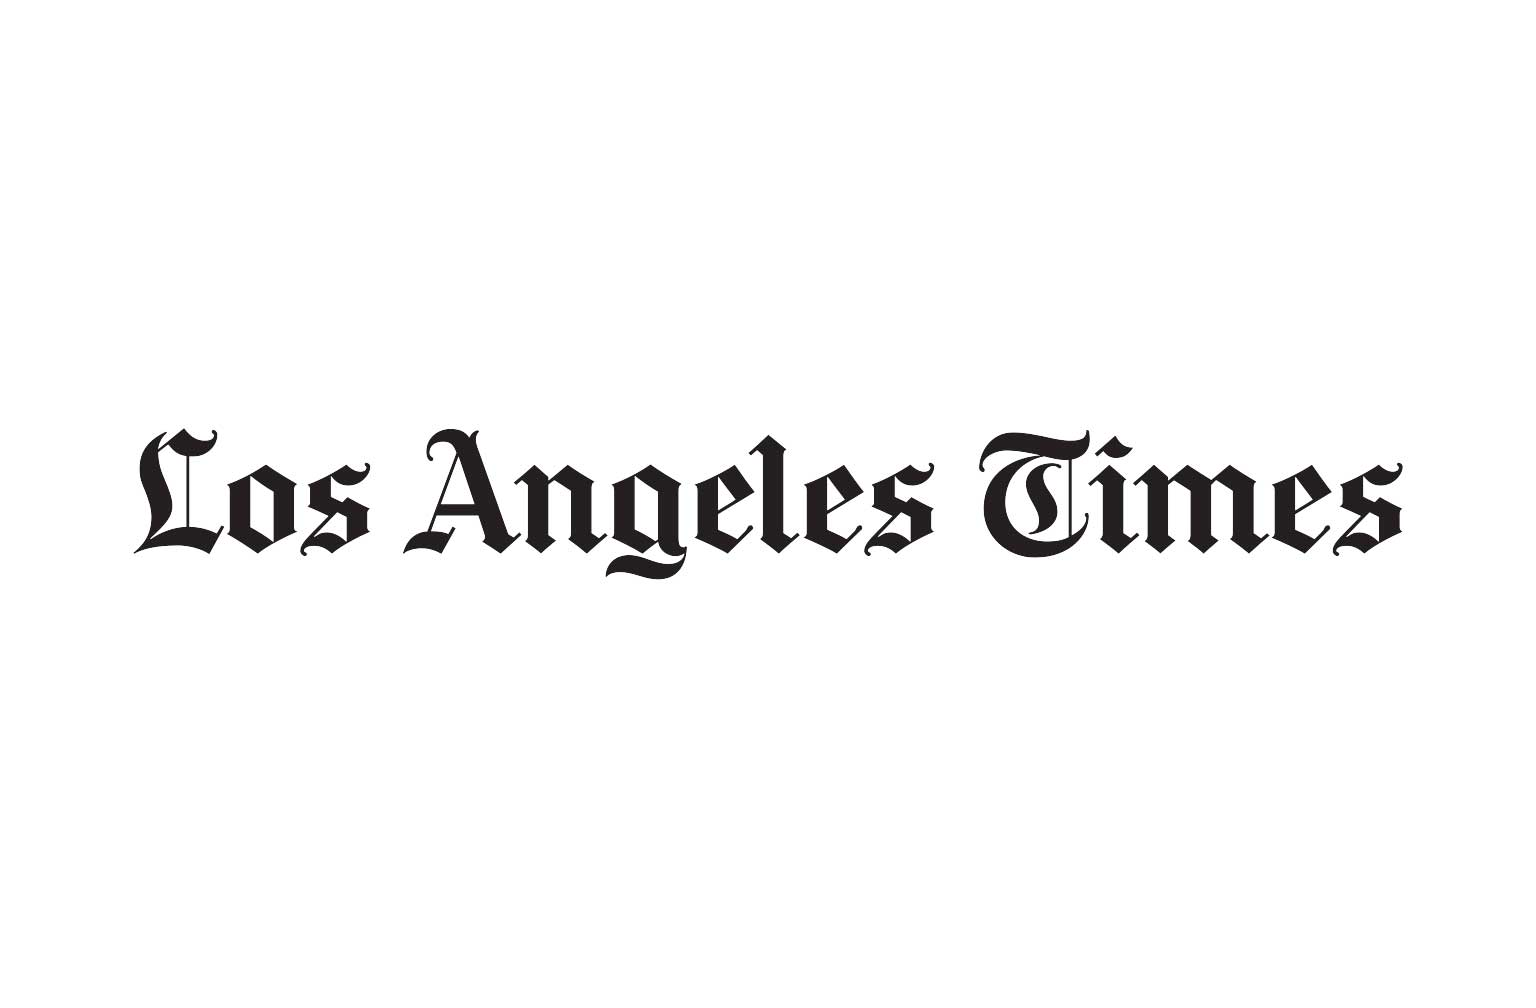 California vaccine bill exemption rules agreed to by Newsom and lawmakers  — LA Times, 9/6/2019